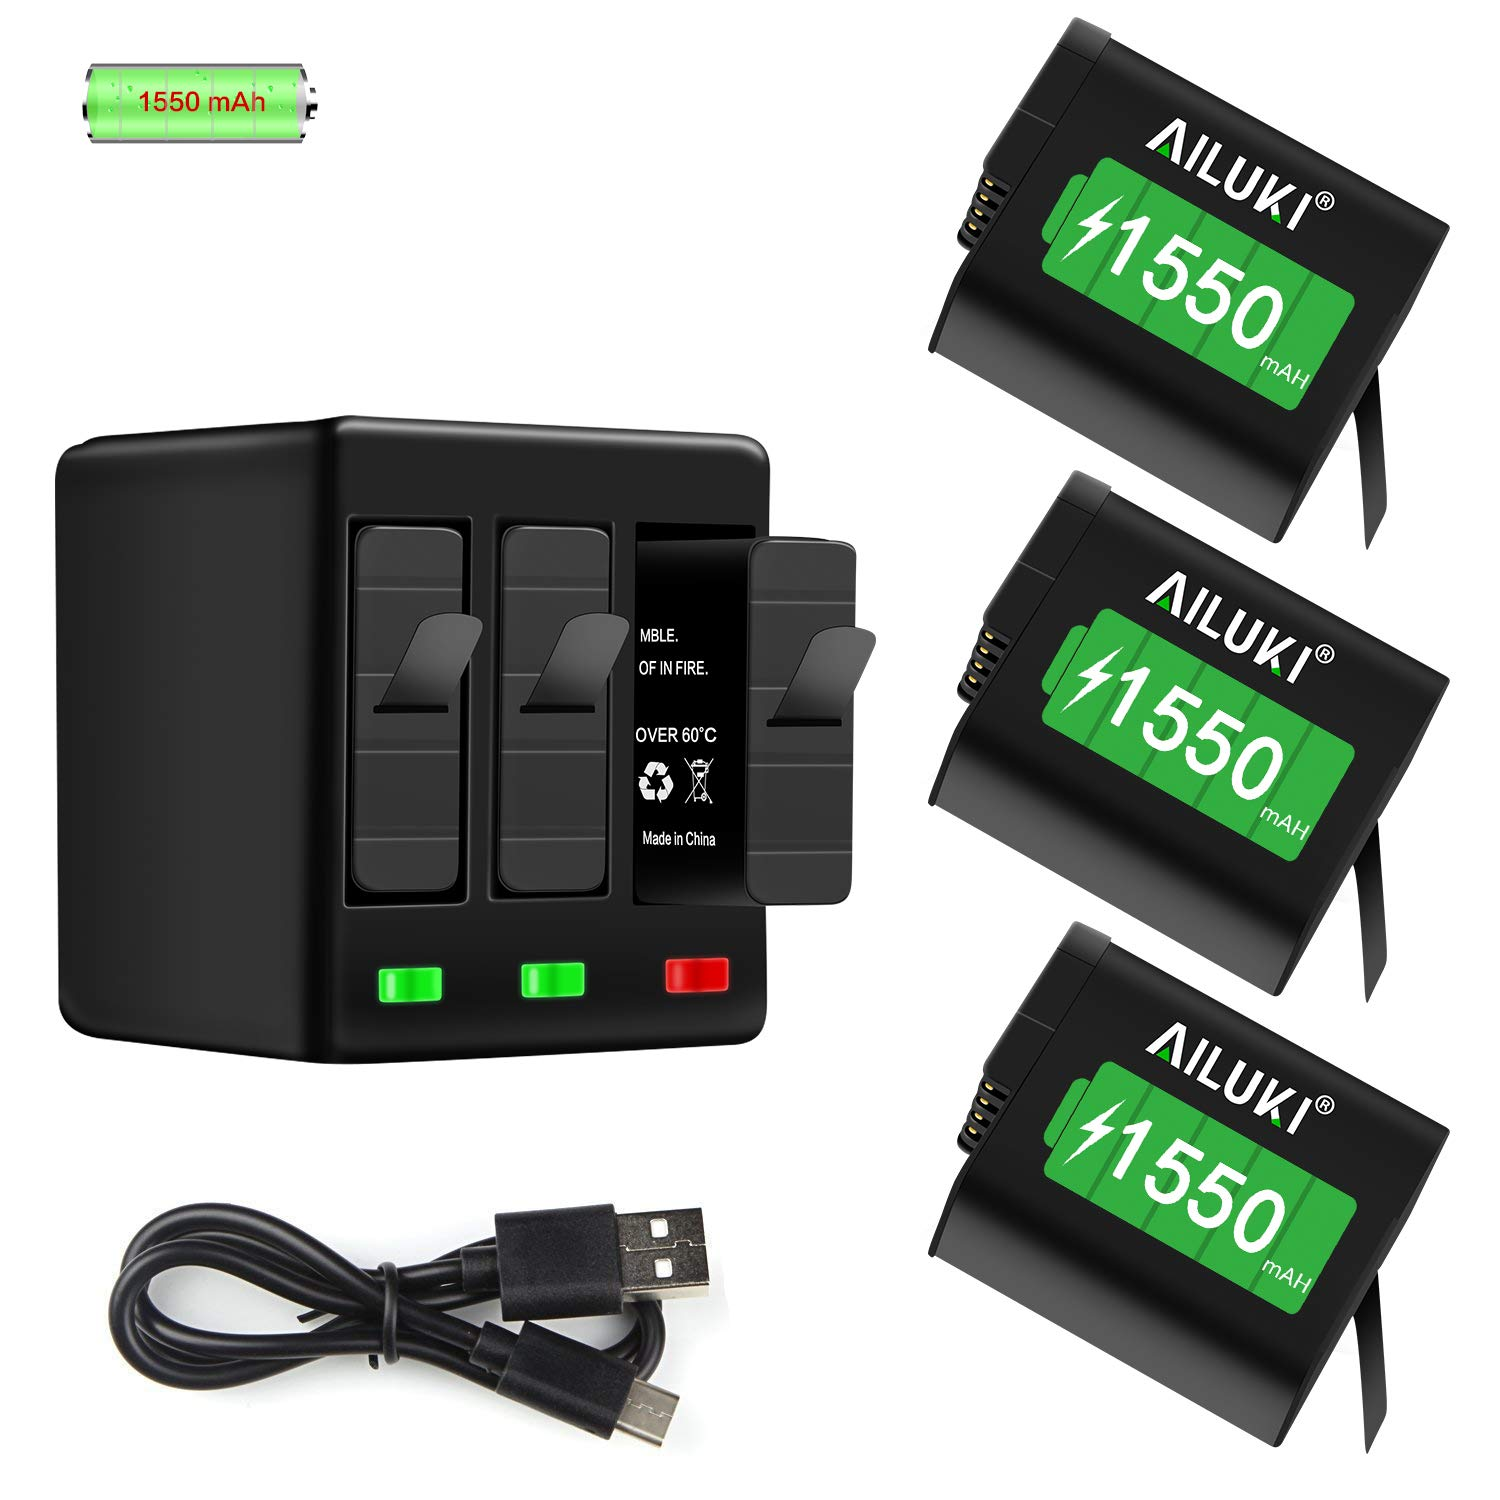 AILUKI GoPro Rechargeable Battery 3 Pack x 1550mAh and 3-Channel Charger for GoPro Hero 5 Black,Hero 6 Black, Hero 7 Black(Fully Compatible with Original Camera) by AILUKI